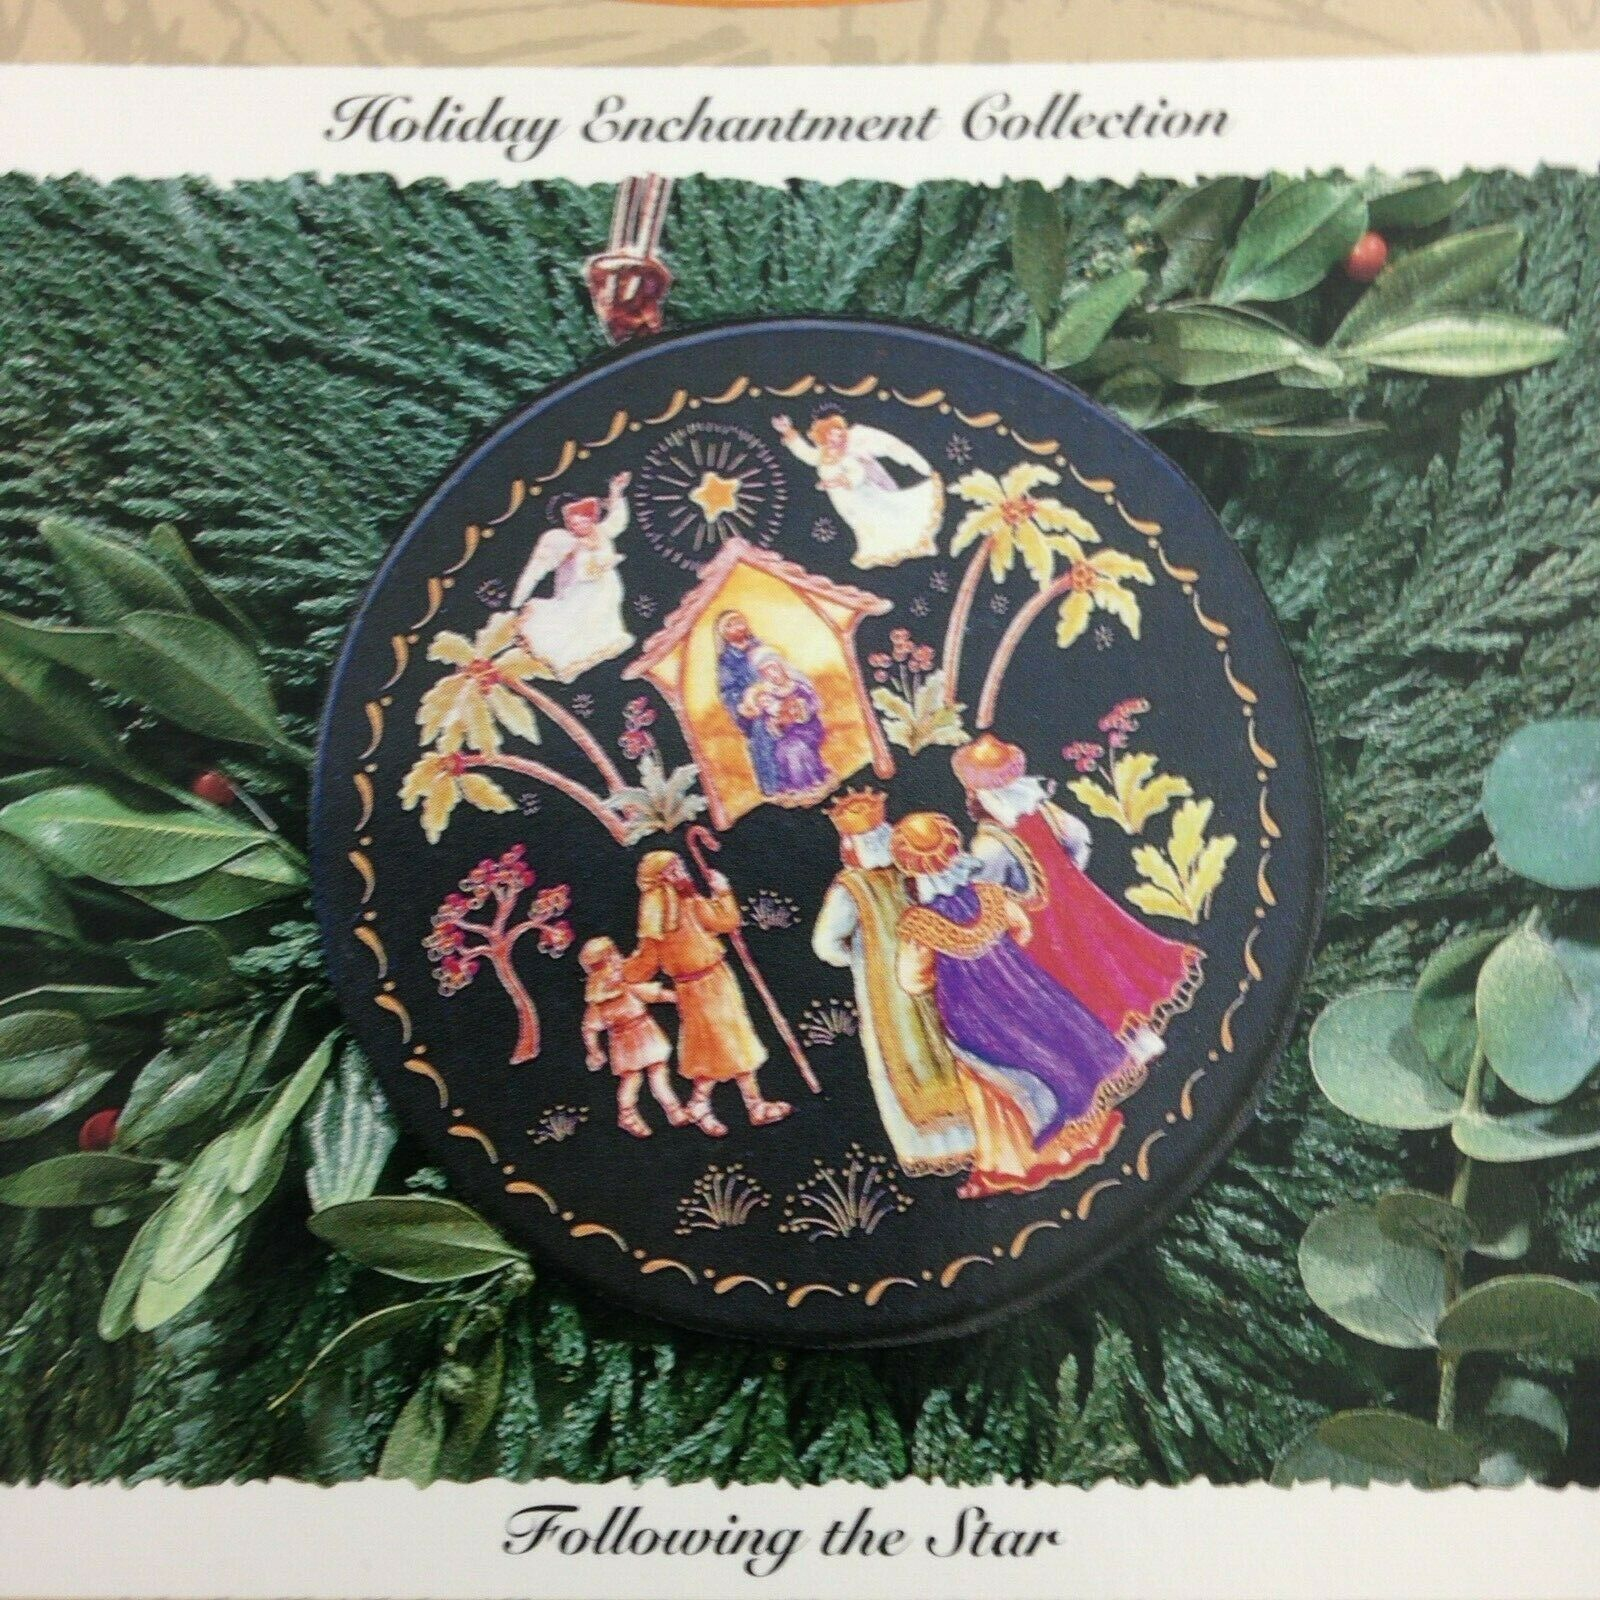 Keepsake Ornament Holiday Enchantment Collection Following The Star Showcase image 2